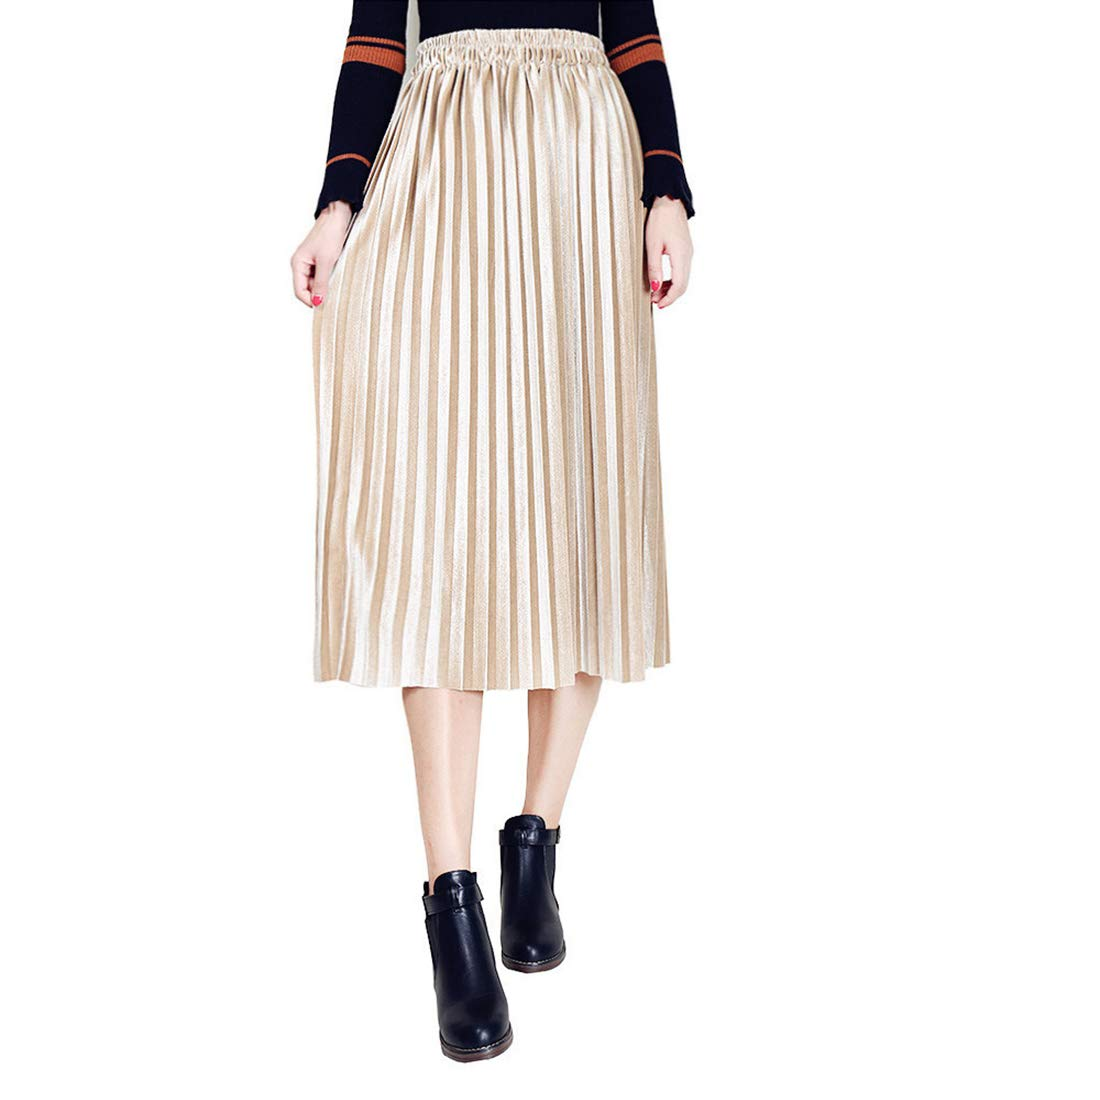 3ff093d985 Belgius Women Pleated Velvet Skirt Metallic Shiny A-line High Waist Midi  Skirt: Amazon.ca: Clothing & Accessories